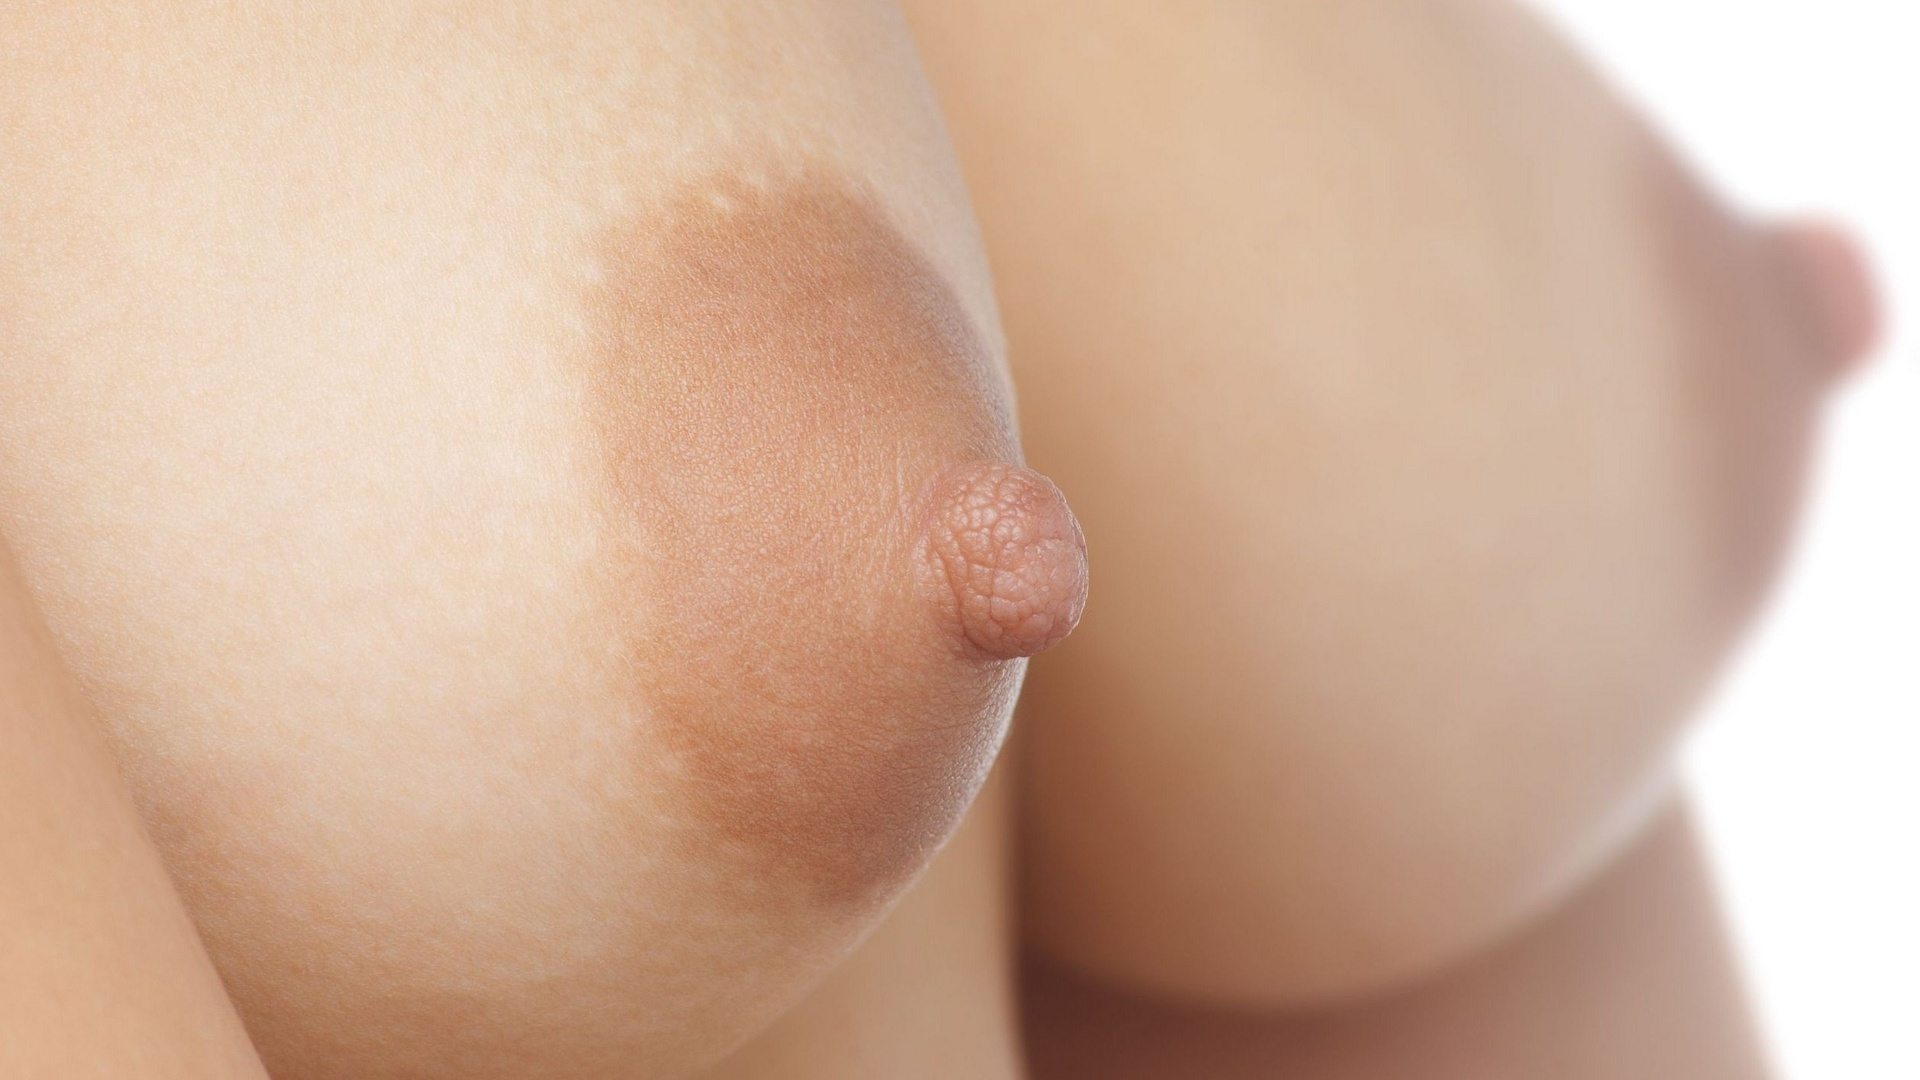 Bidnaked boobs close up